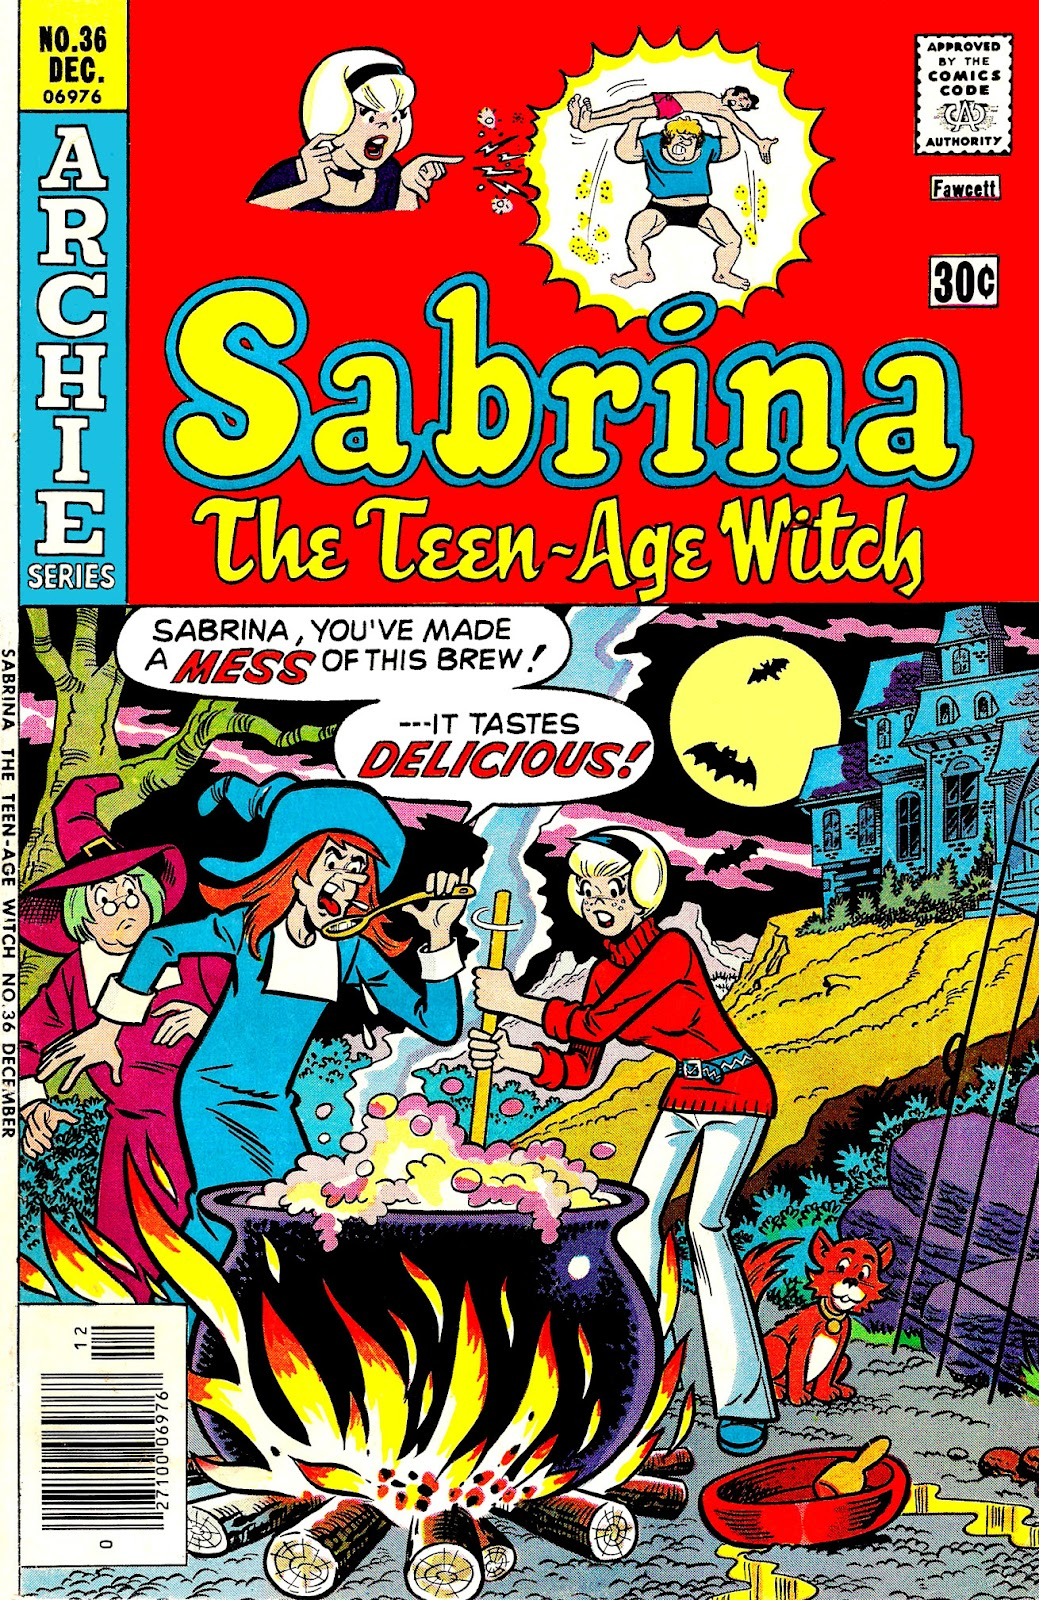 Sabrina The Teenage Witch (1971) issue 36 - Page 1